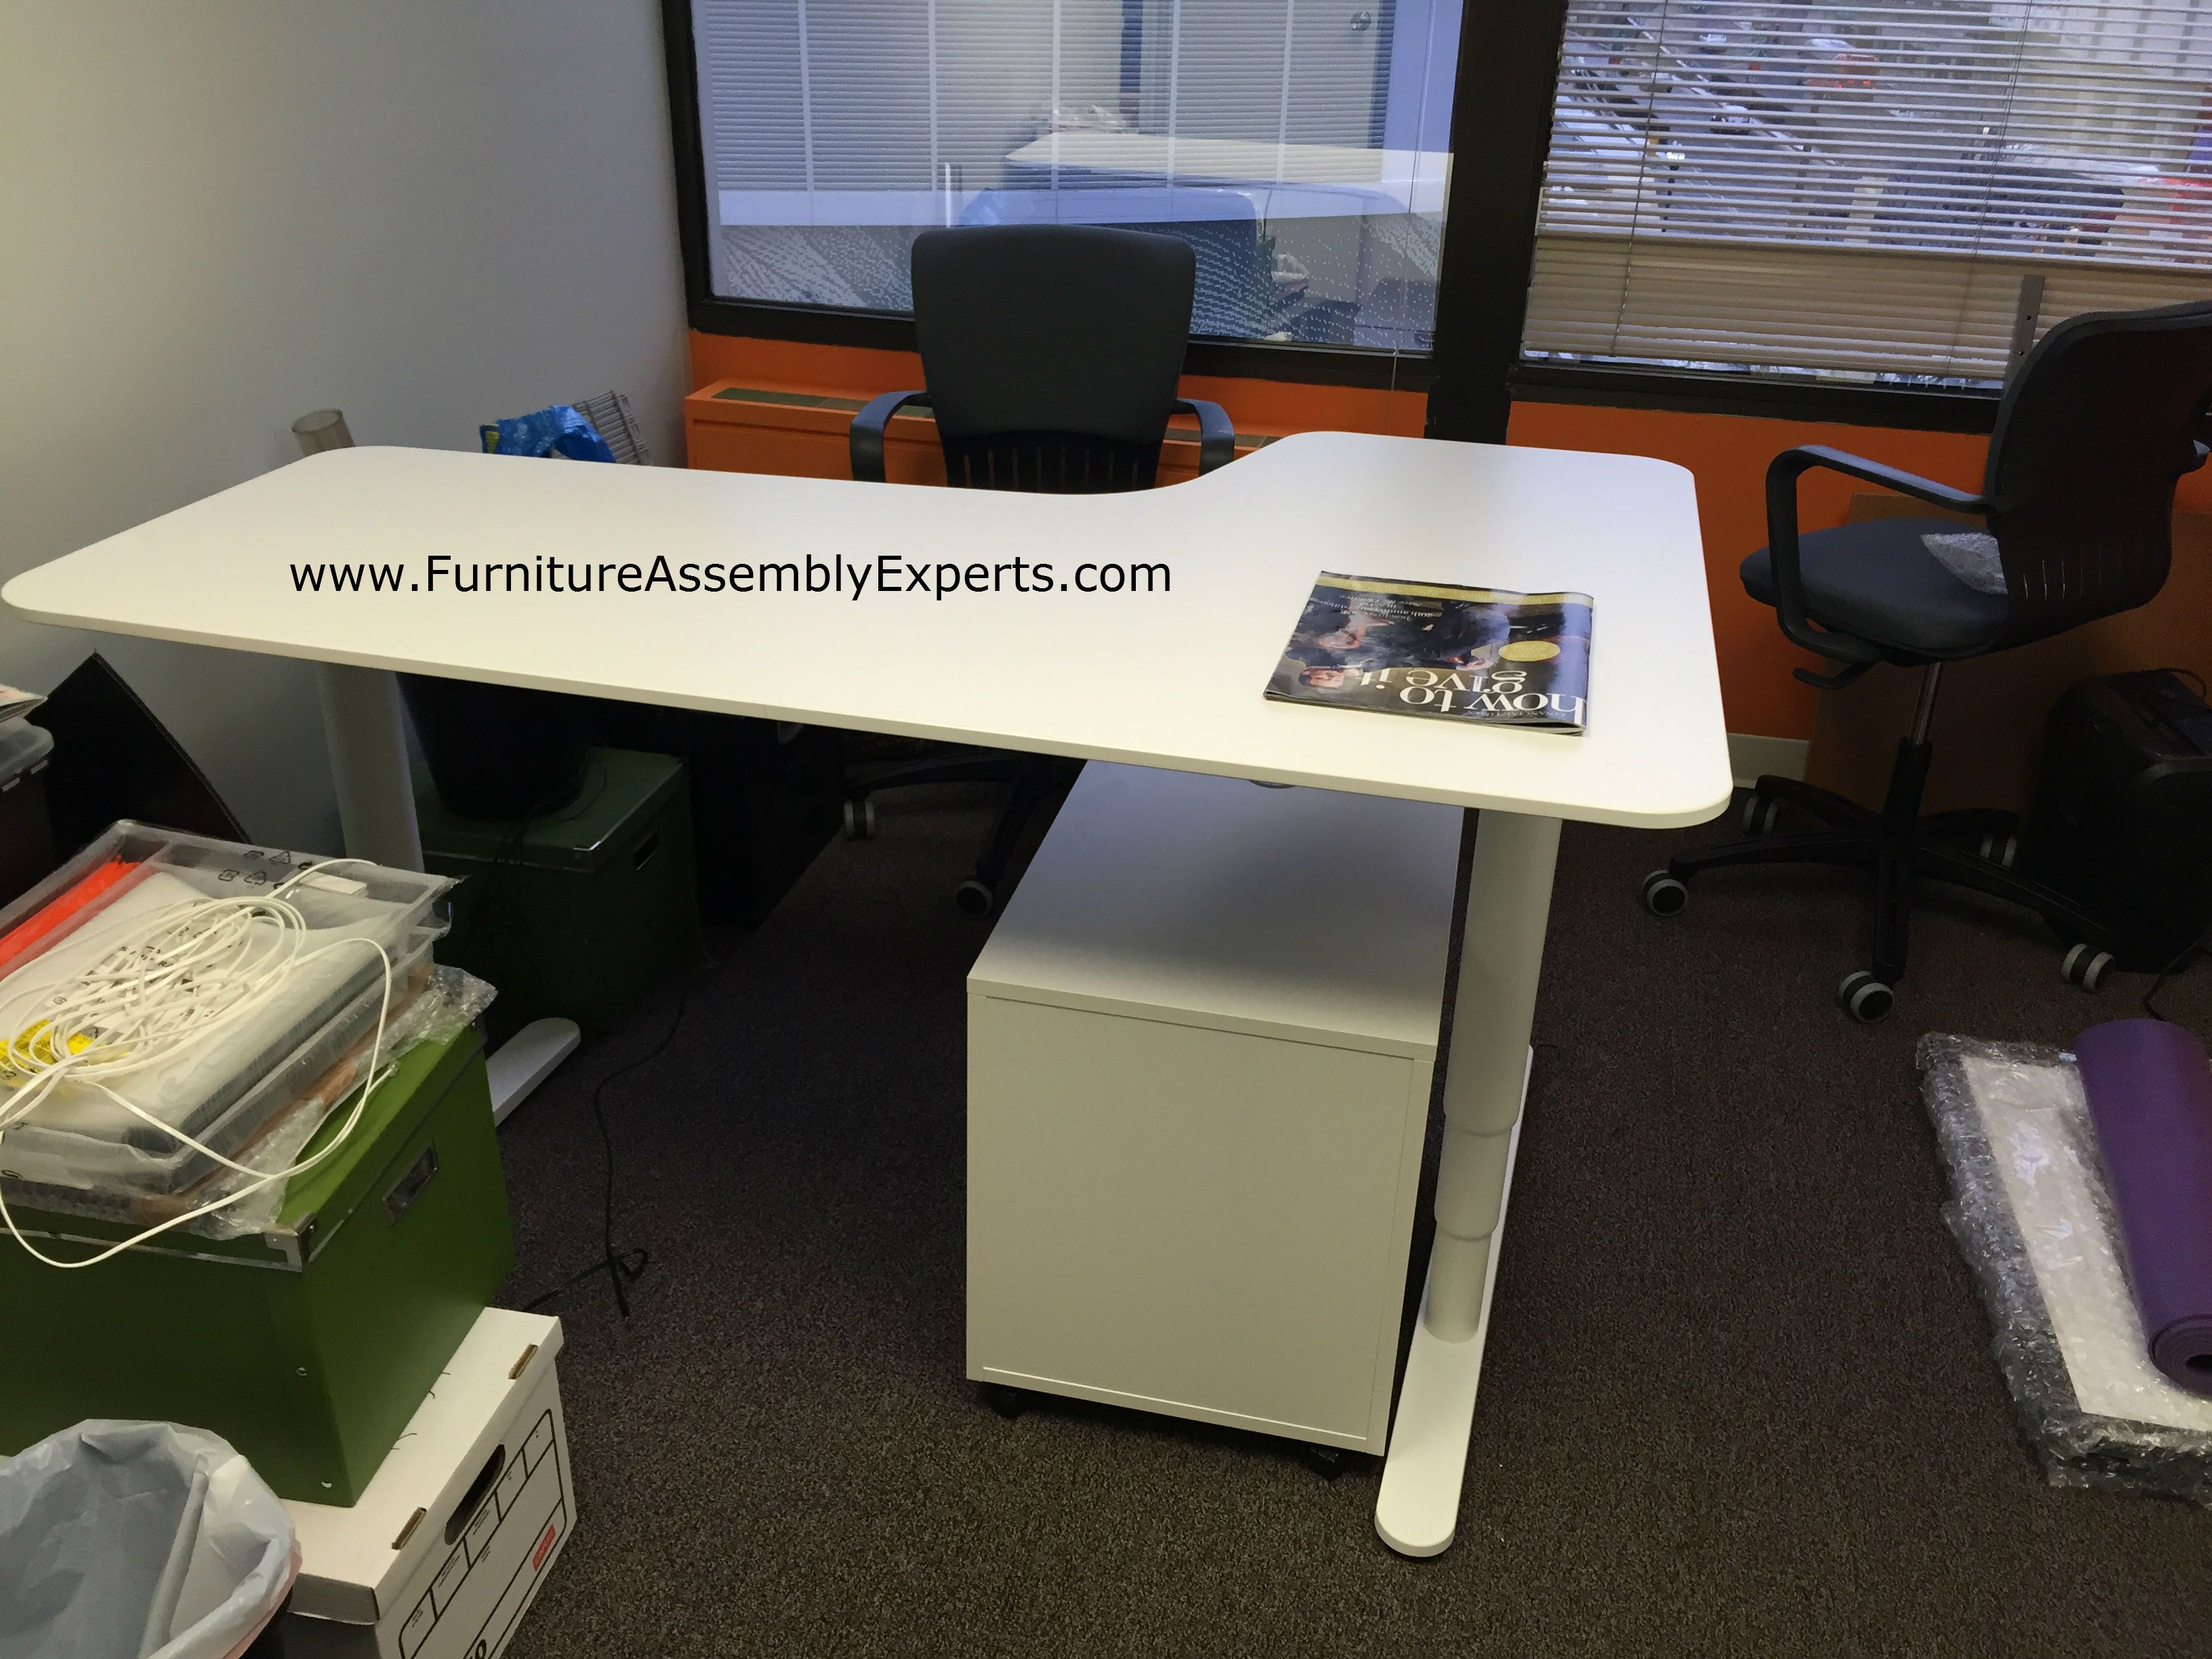 Ikea Bekant Sit Stand Electric Adjustable Height Desk With Galant File Cabinet Assemb Ikea Furniture Assembly Adjustable Height Desk Electric Ikea Office Decor